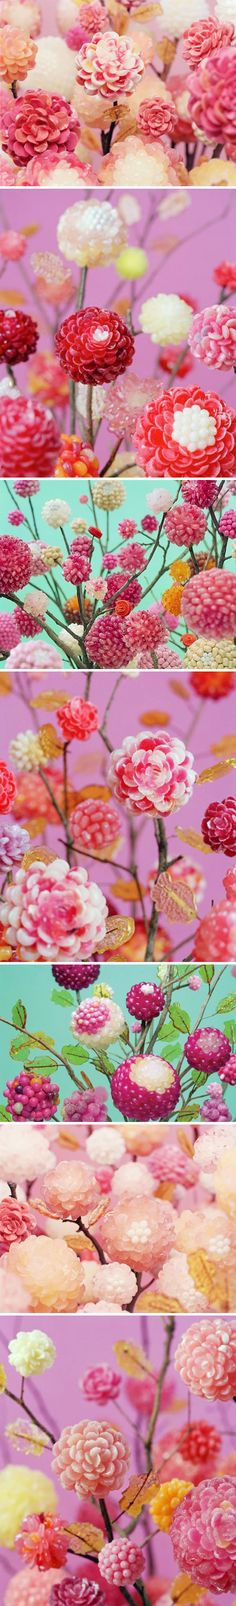 Still life photos of peonies... made from CANDY! by Koo Seong Youn